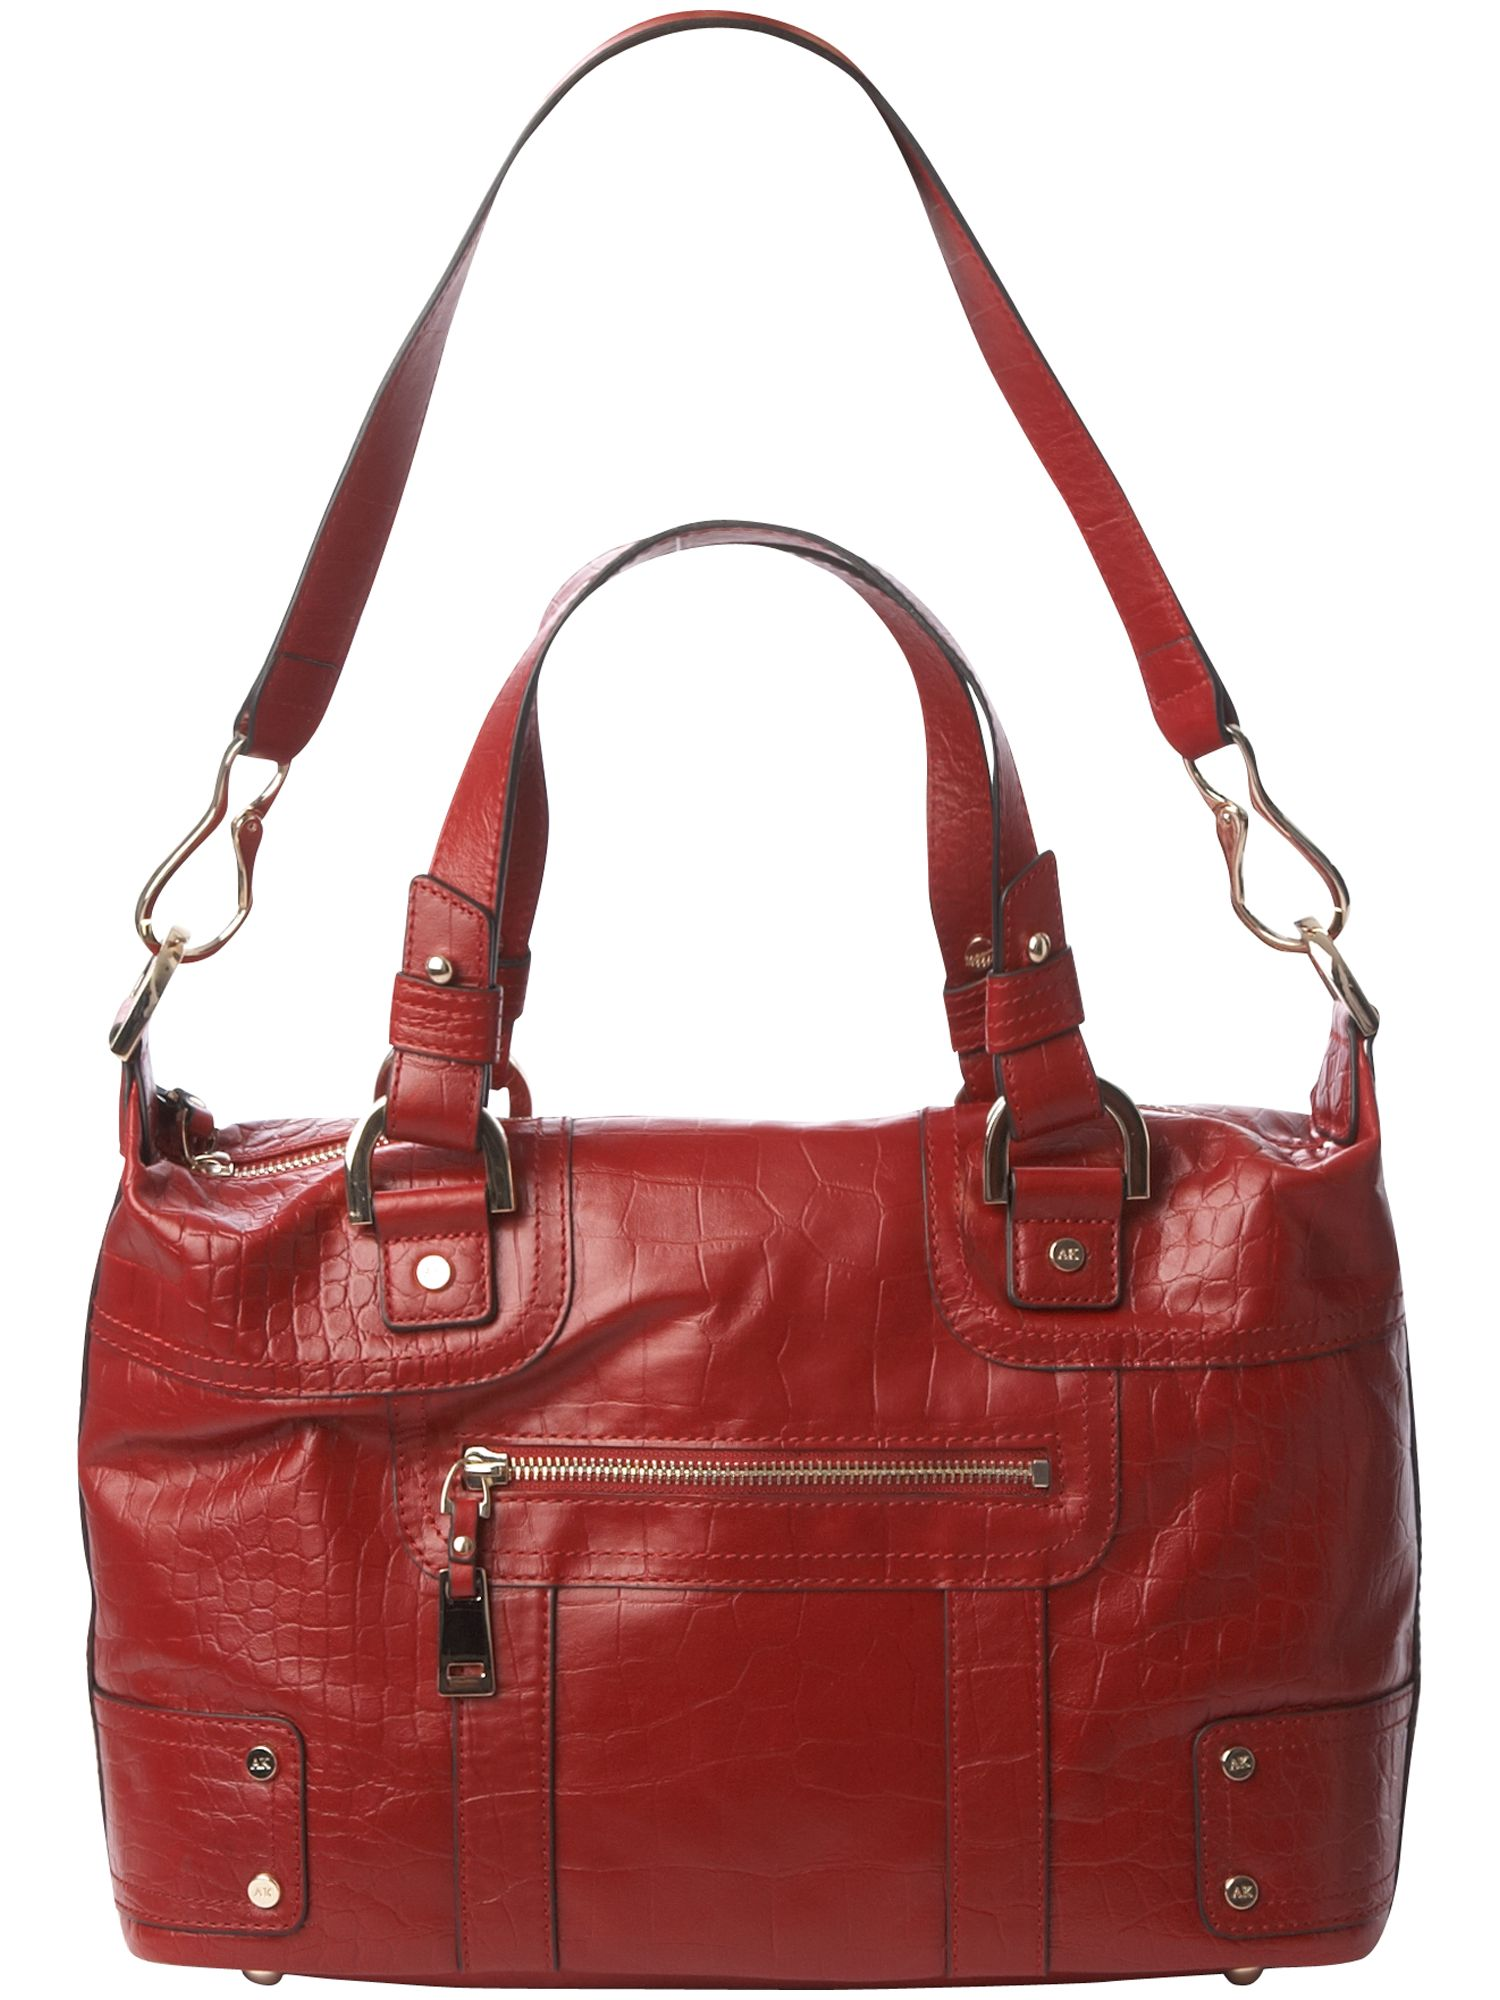 AK Anne Klein Croc Rock medium leather bowling bag product image